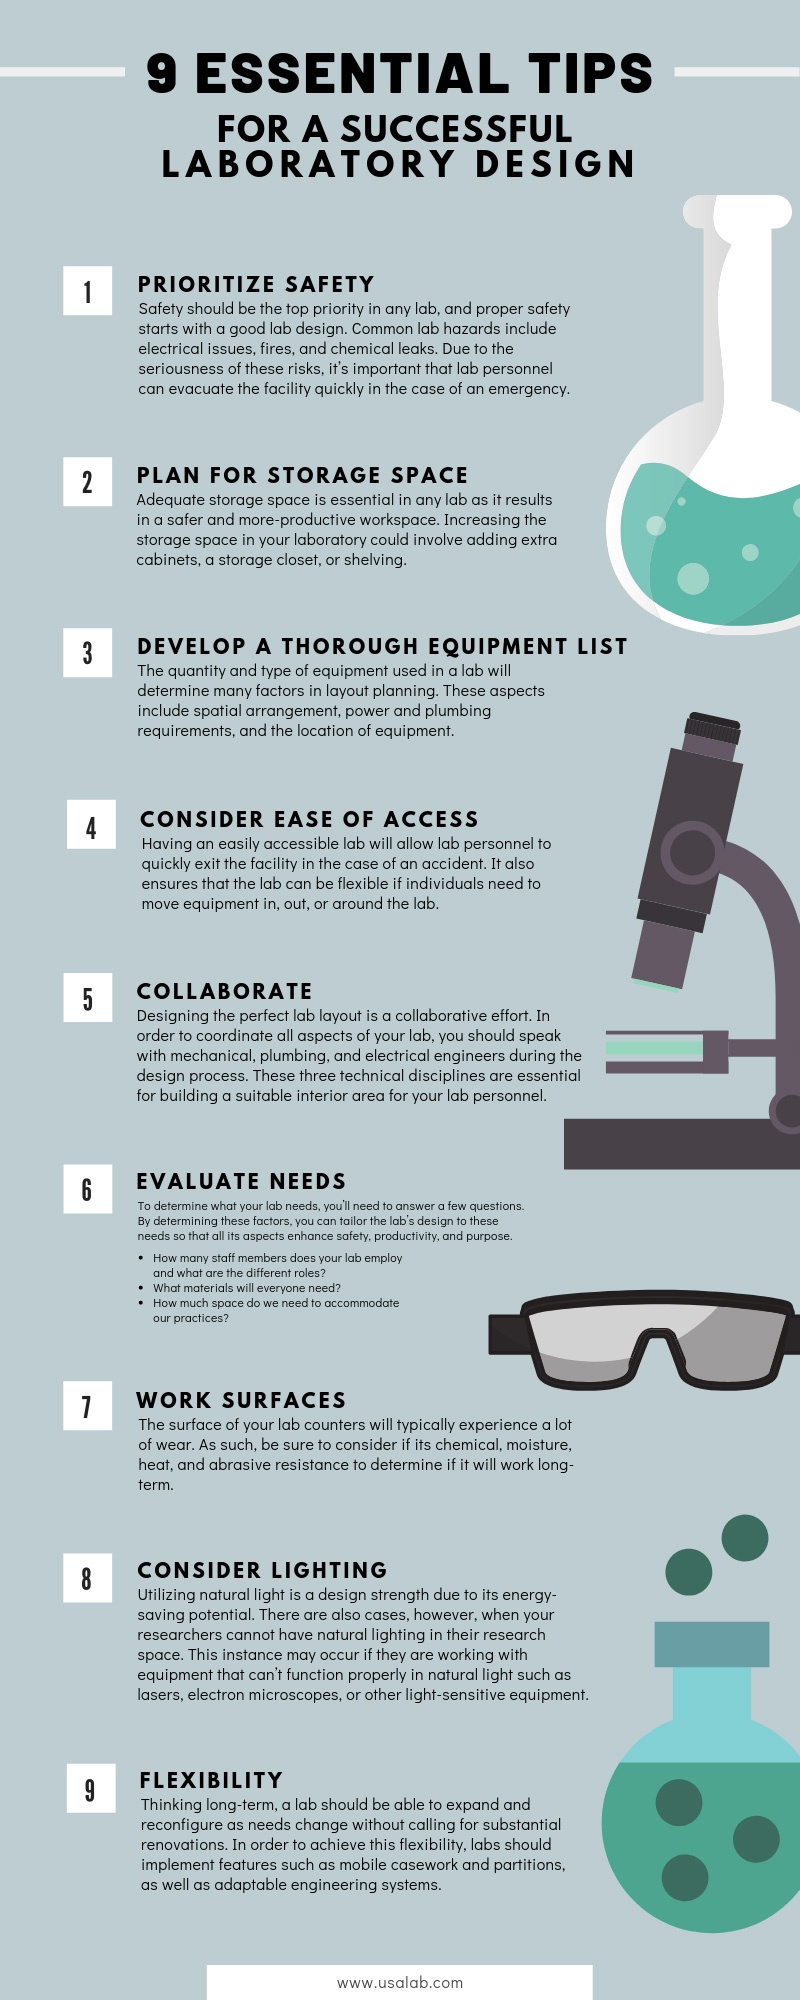 9 Essential Tips for a Successful Laboratory Design infographic